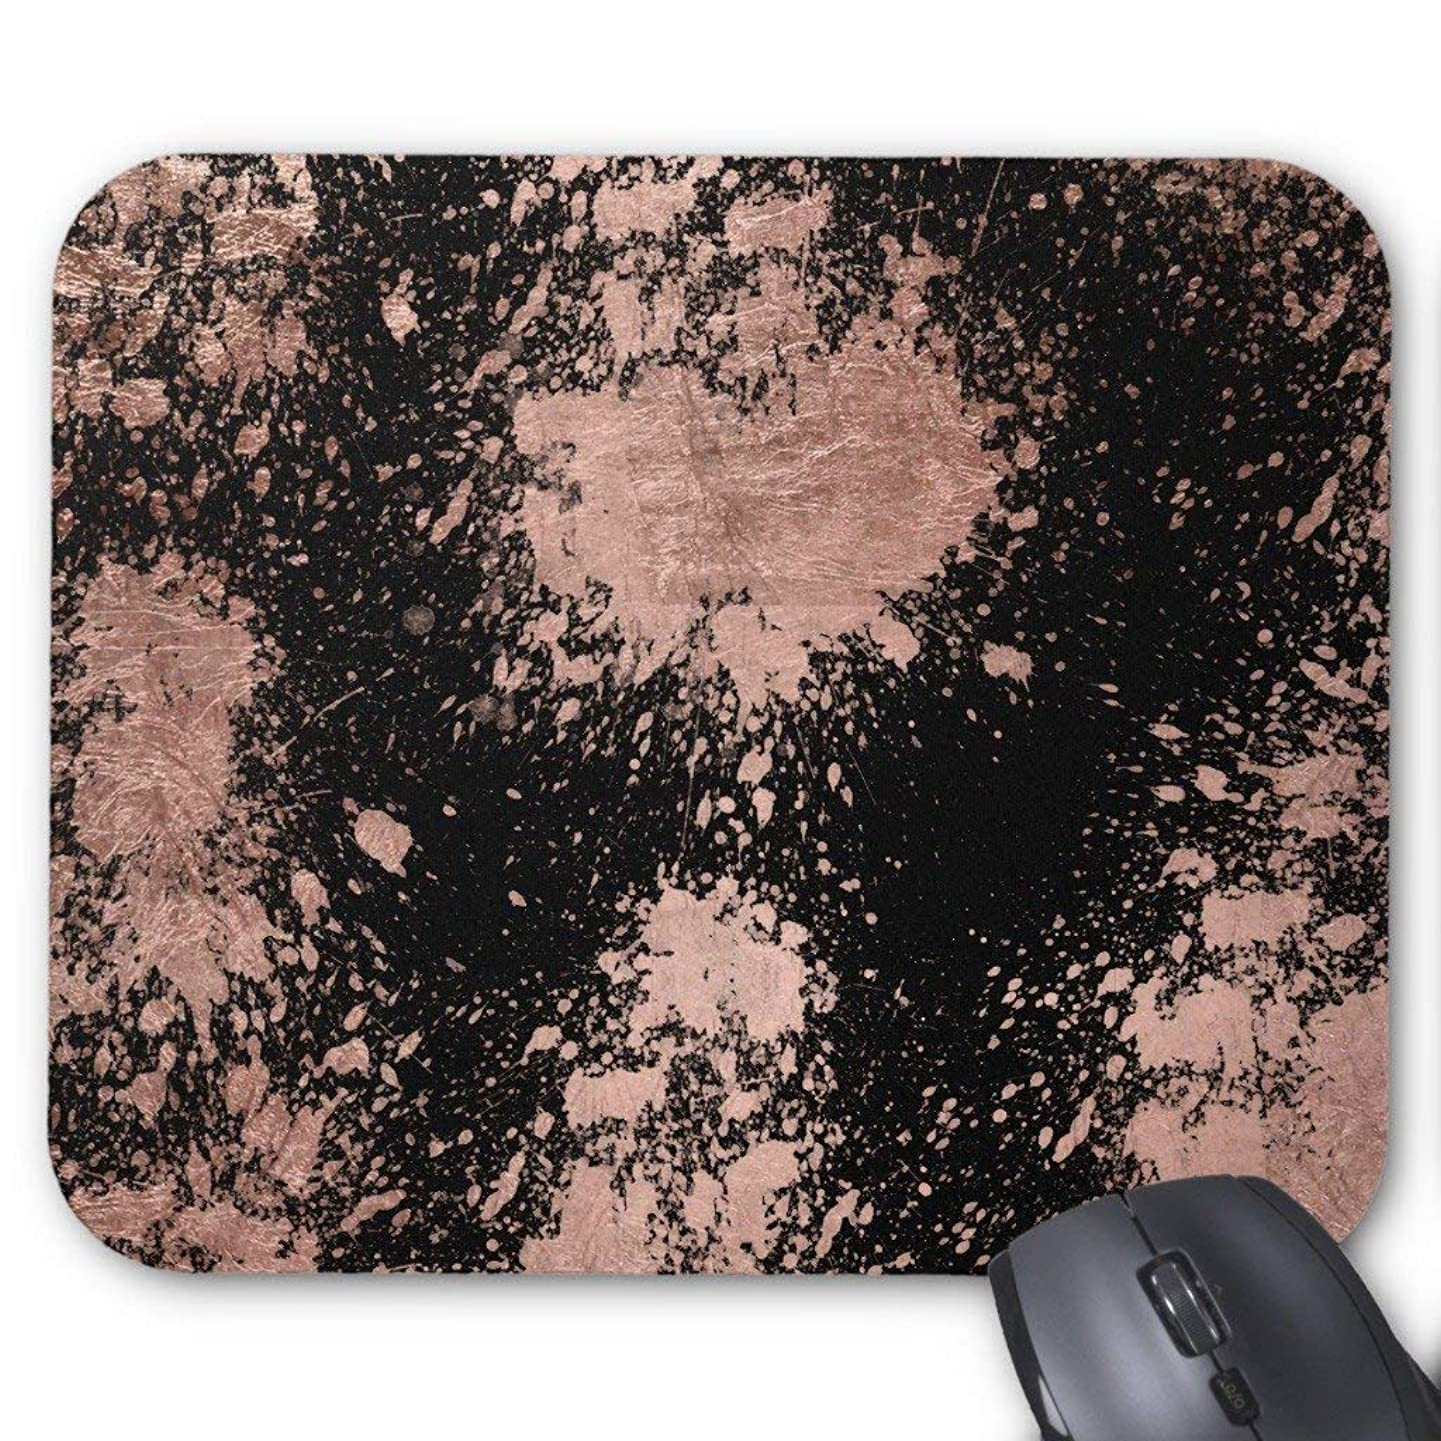 Modern Faux Rose Gold Foil Bstrokes Black Mouse Pad 7.08X8.66 inches/18X22 cm,Non-Toxic Design zrgsueqhbrot